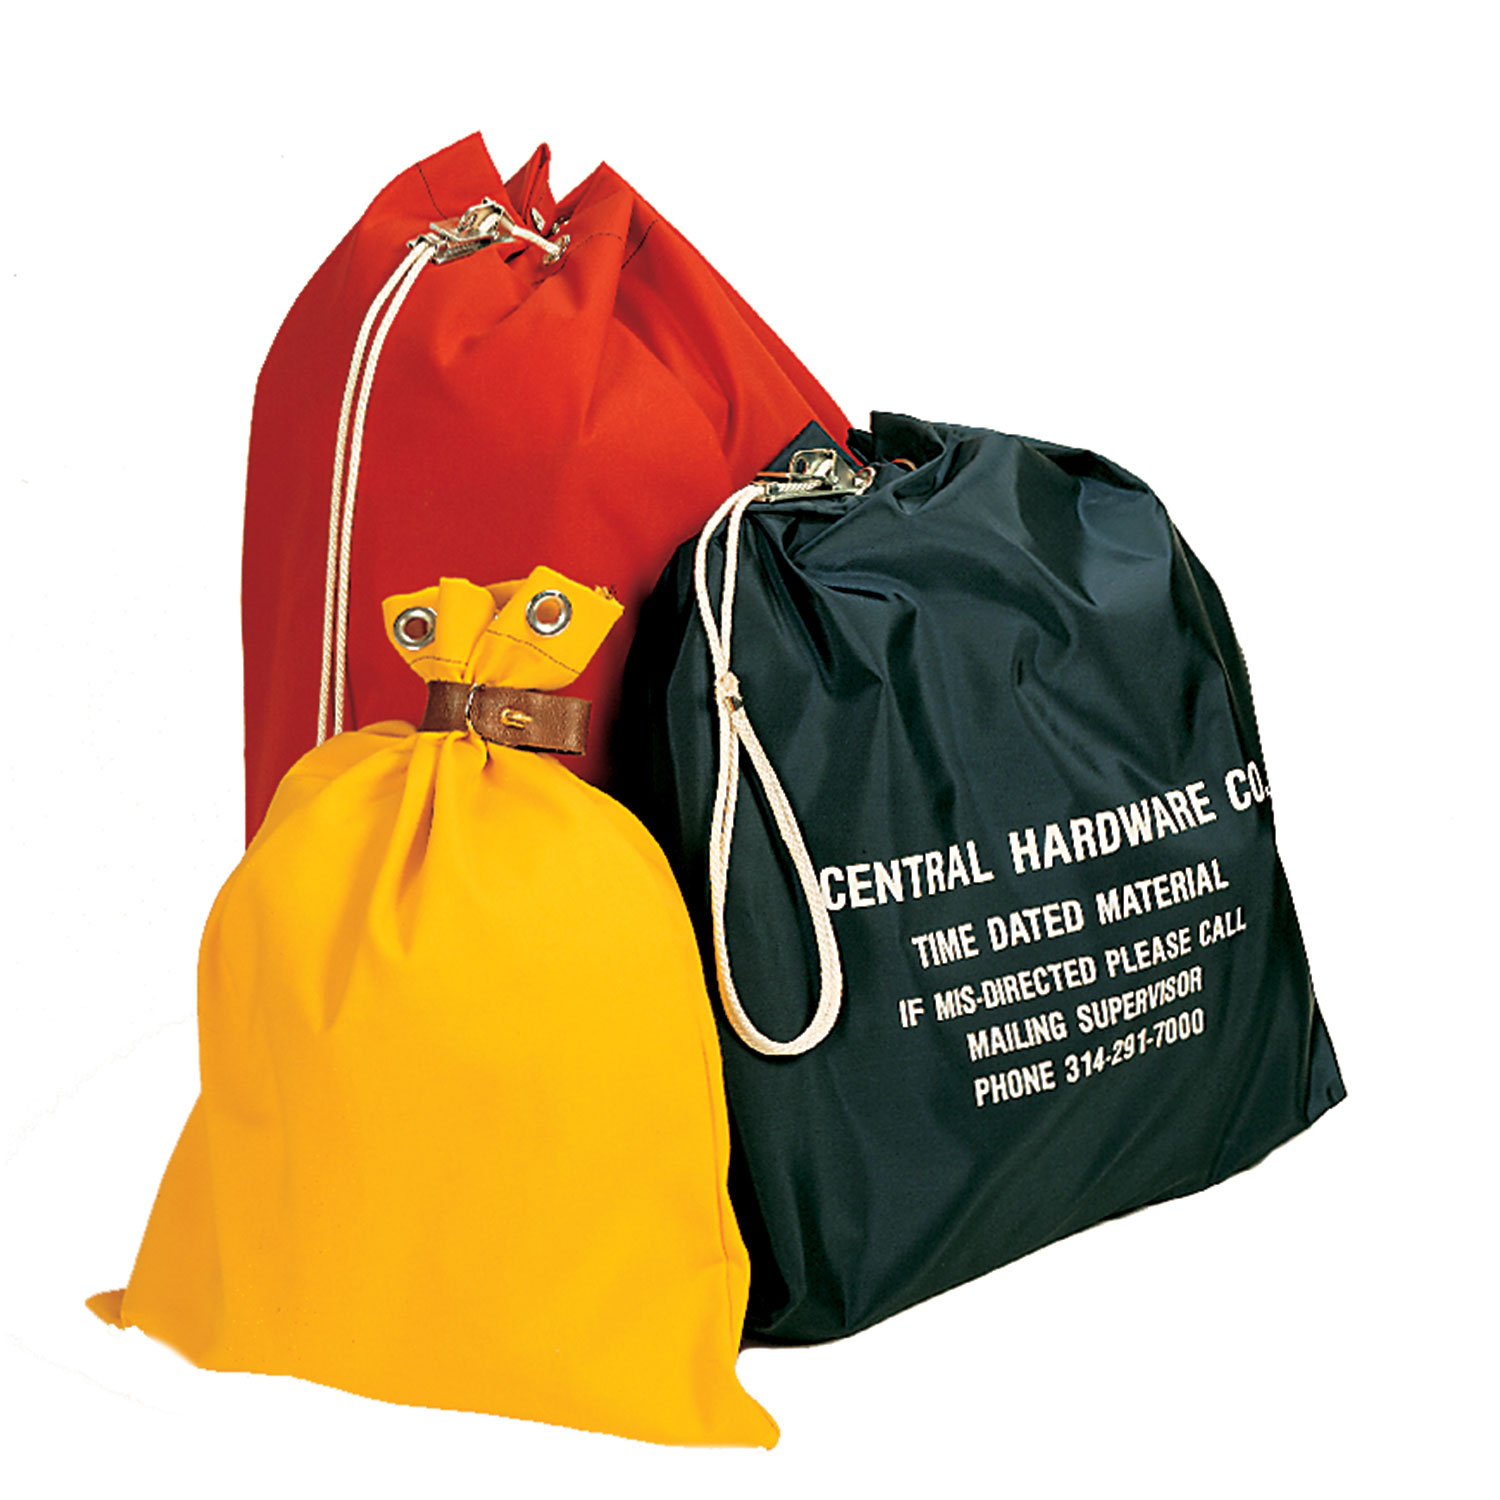 Post-Office-Type-Mail-Bags